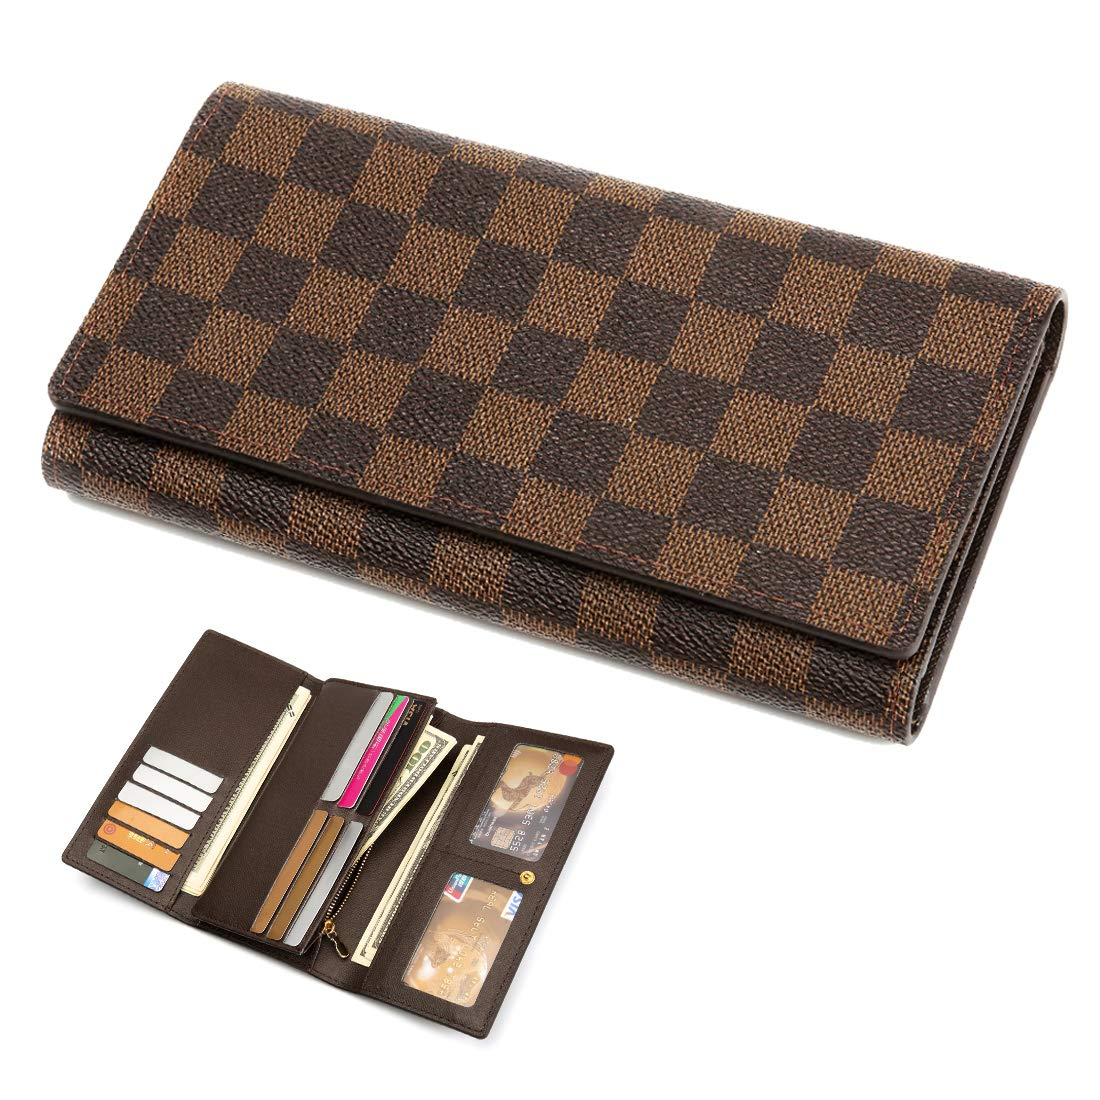 Wallets for Women Leather Trifold Clutch Checkbook Purse RFID Blocking with Credit Card Holder Organizer (Brown) by CG Gold